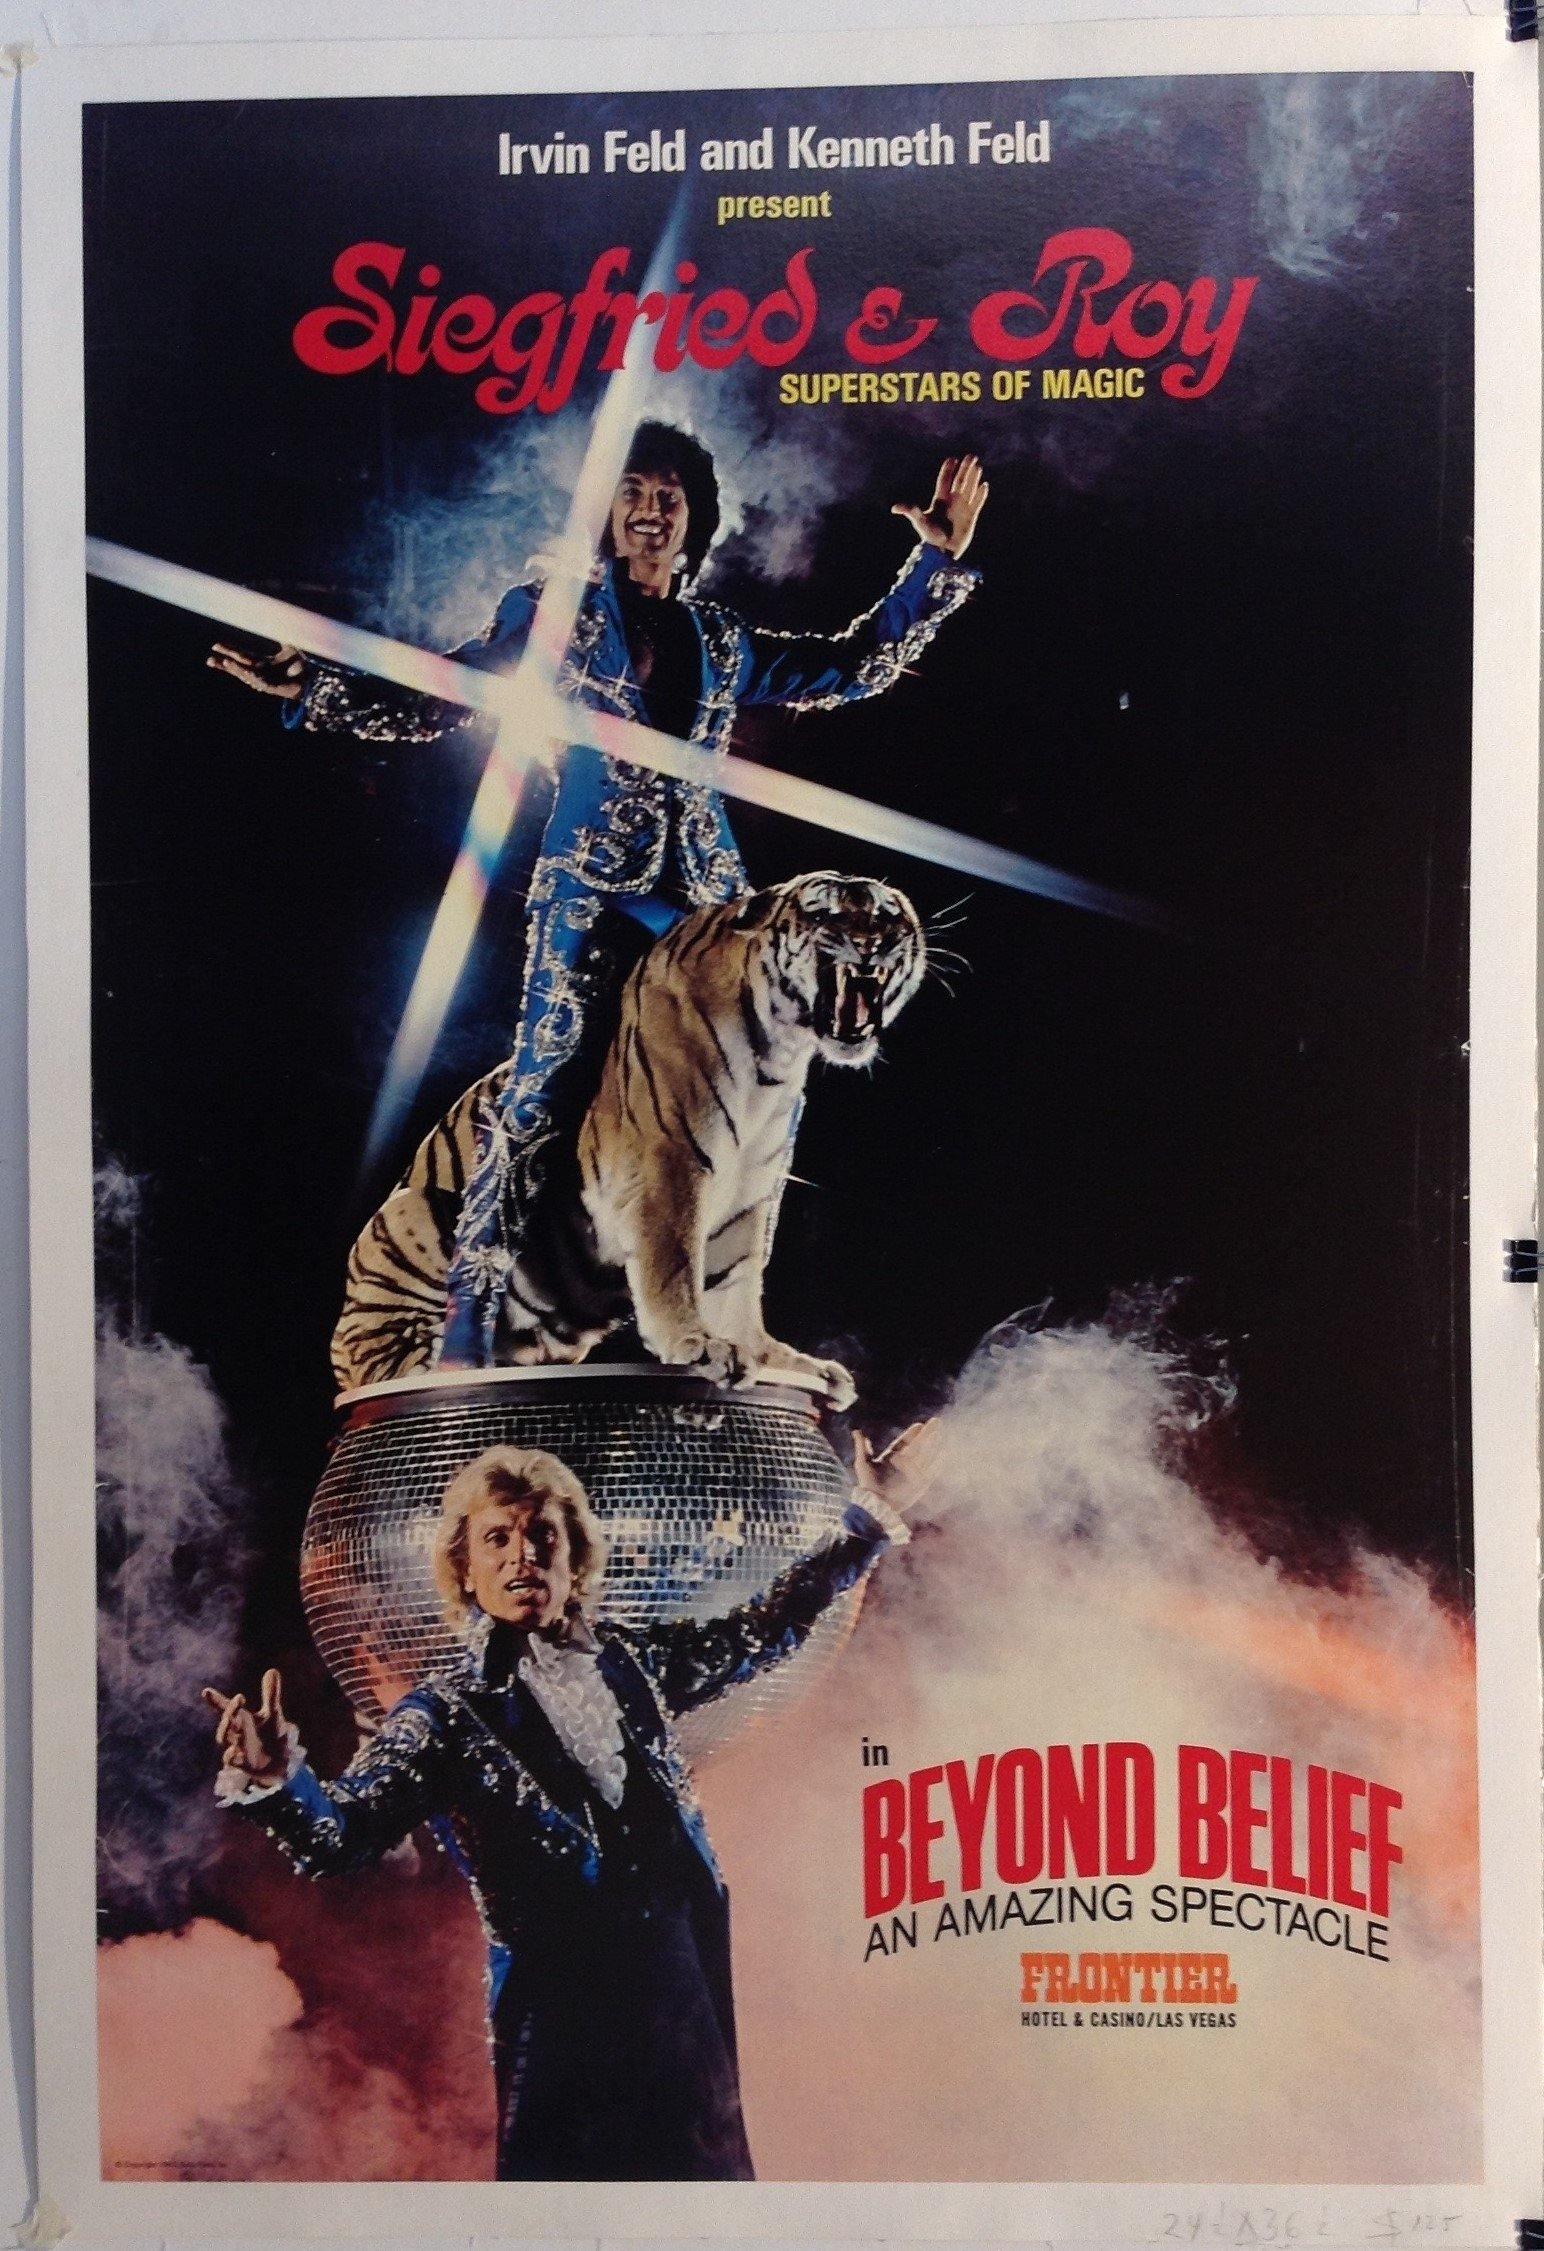 Siegfried & Roy Superstars of Magic in Beyond Belief, an Amazing Spectacle